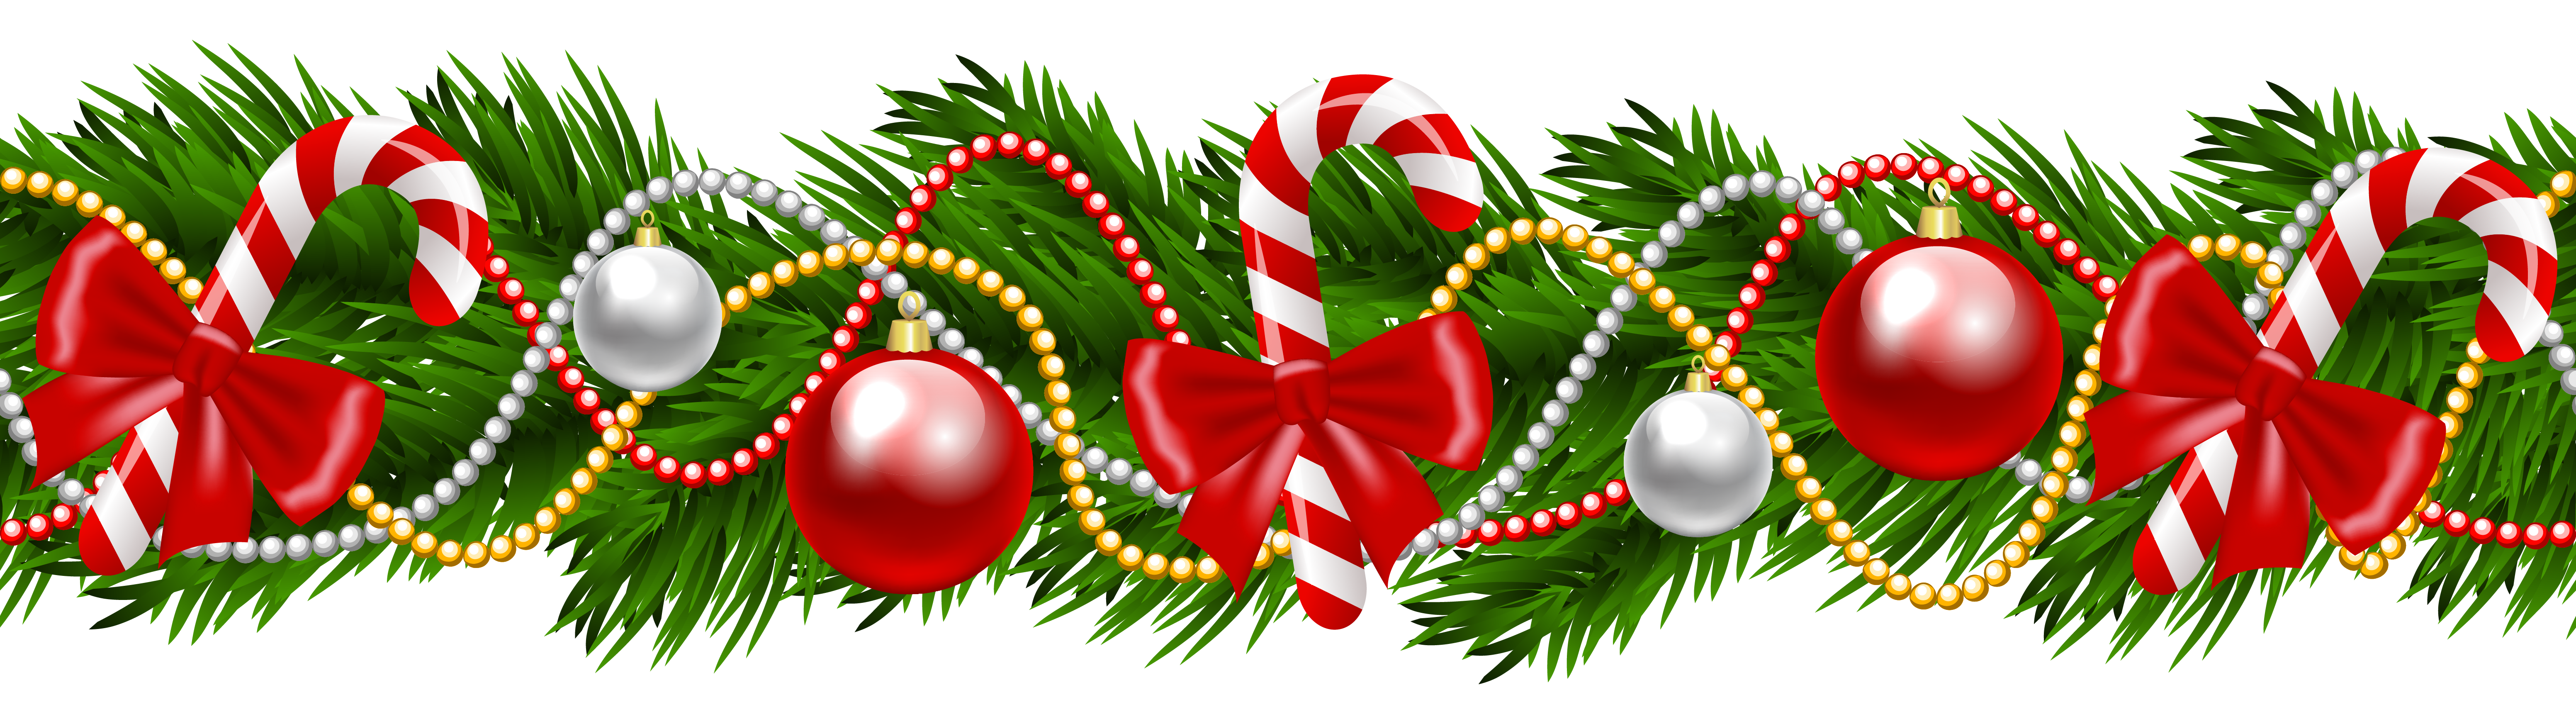 Fruit clipart garland. Merry christmas holiday pencil